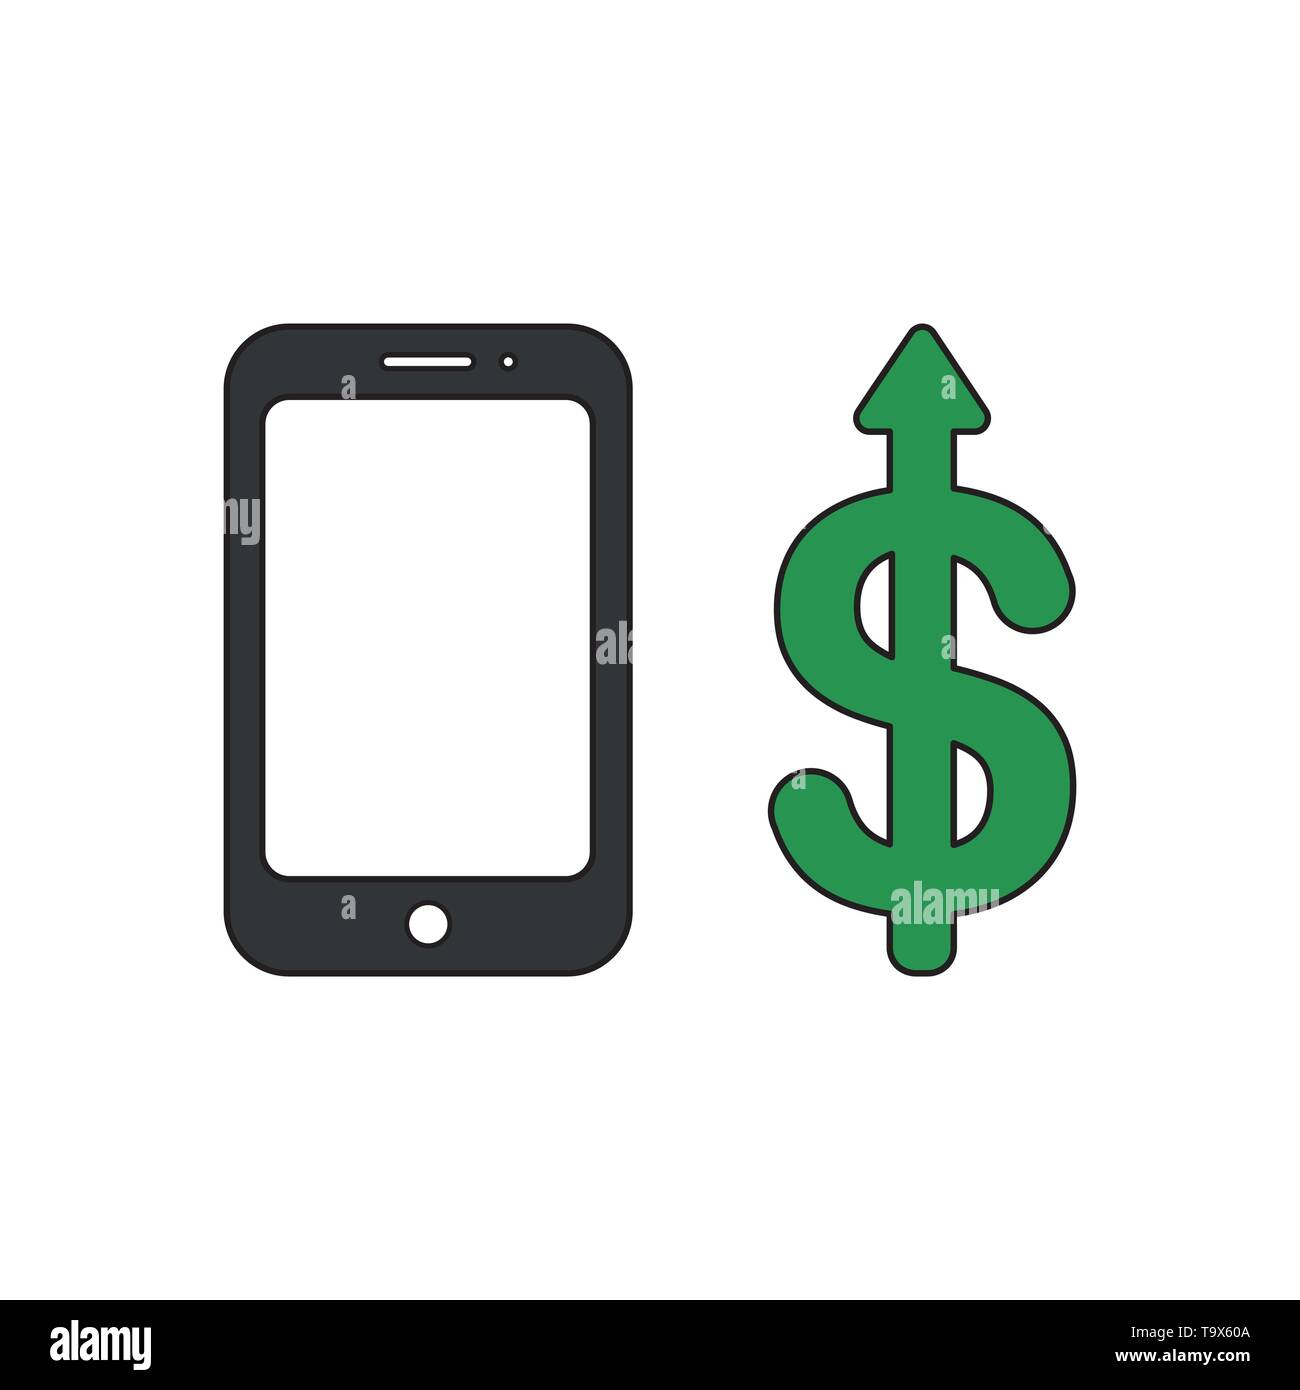 Vector icon concept of smartphone with dollar money arrow moving up. Black outlines and colored. - Stock Vector